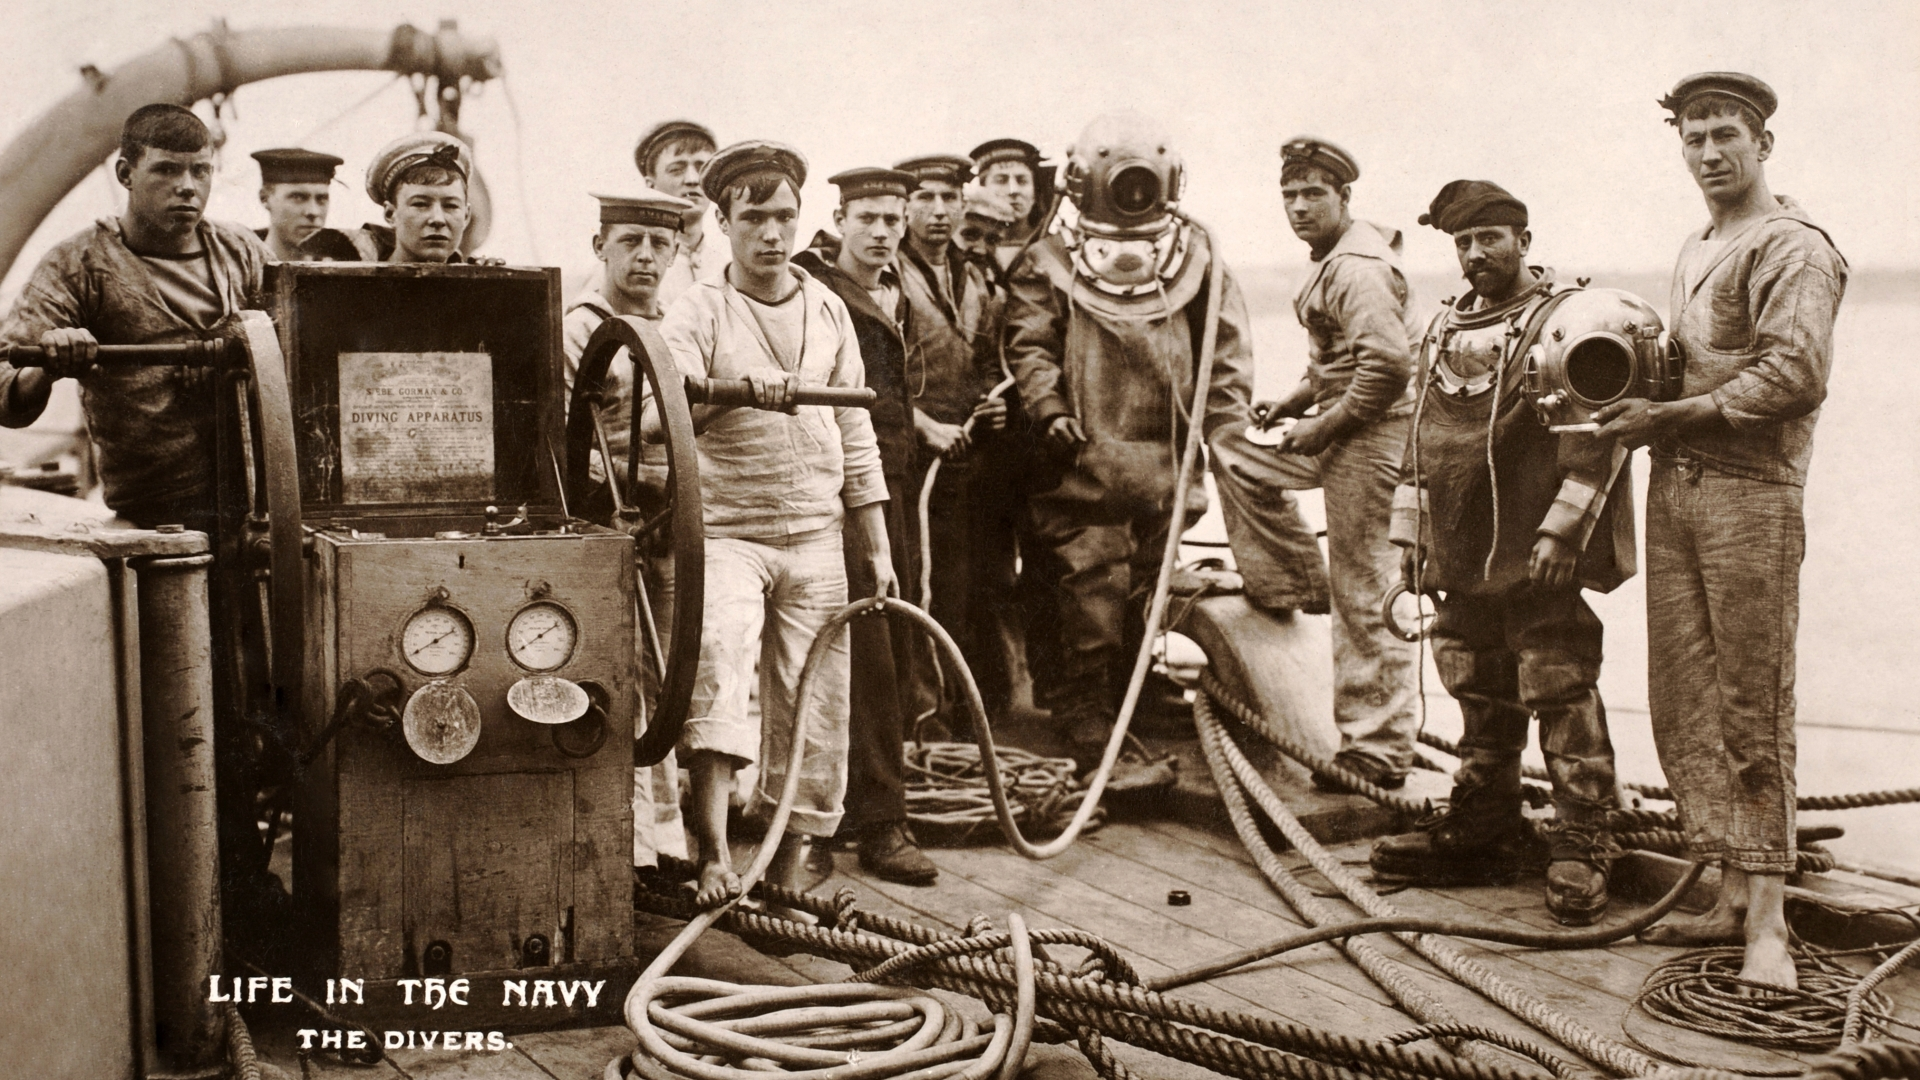 World War I naval divers, off the coast of Portsmouth. (Credit: Popperfoto/Getty Images)